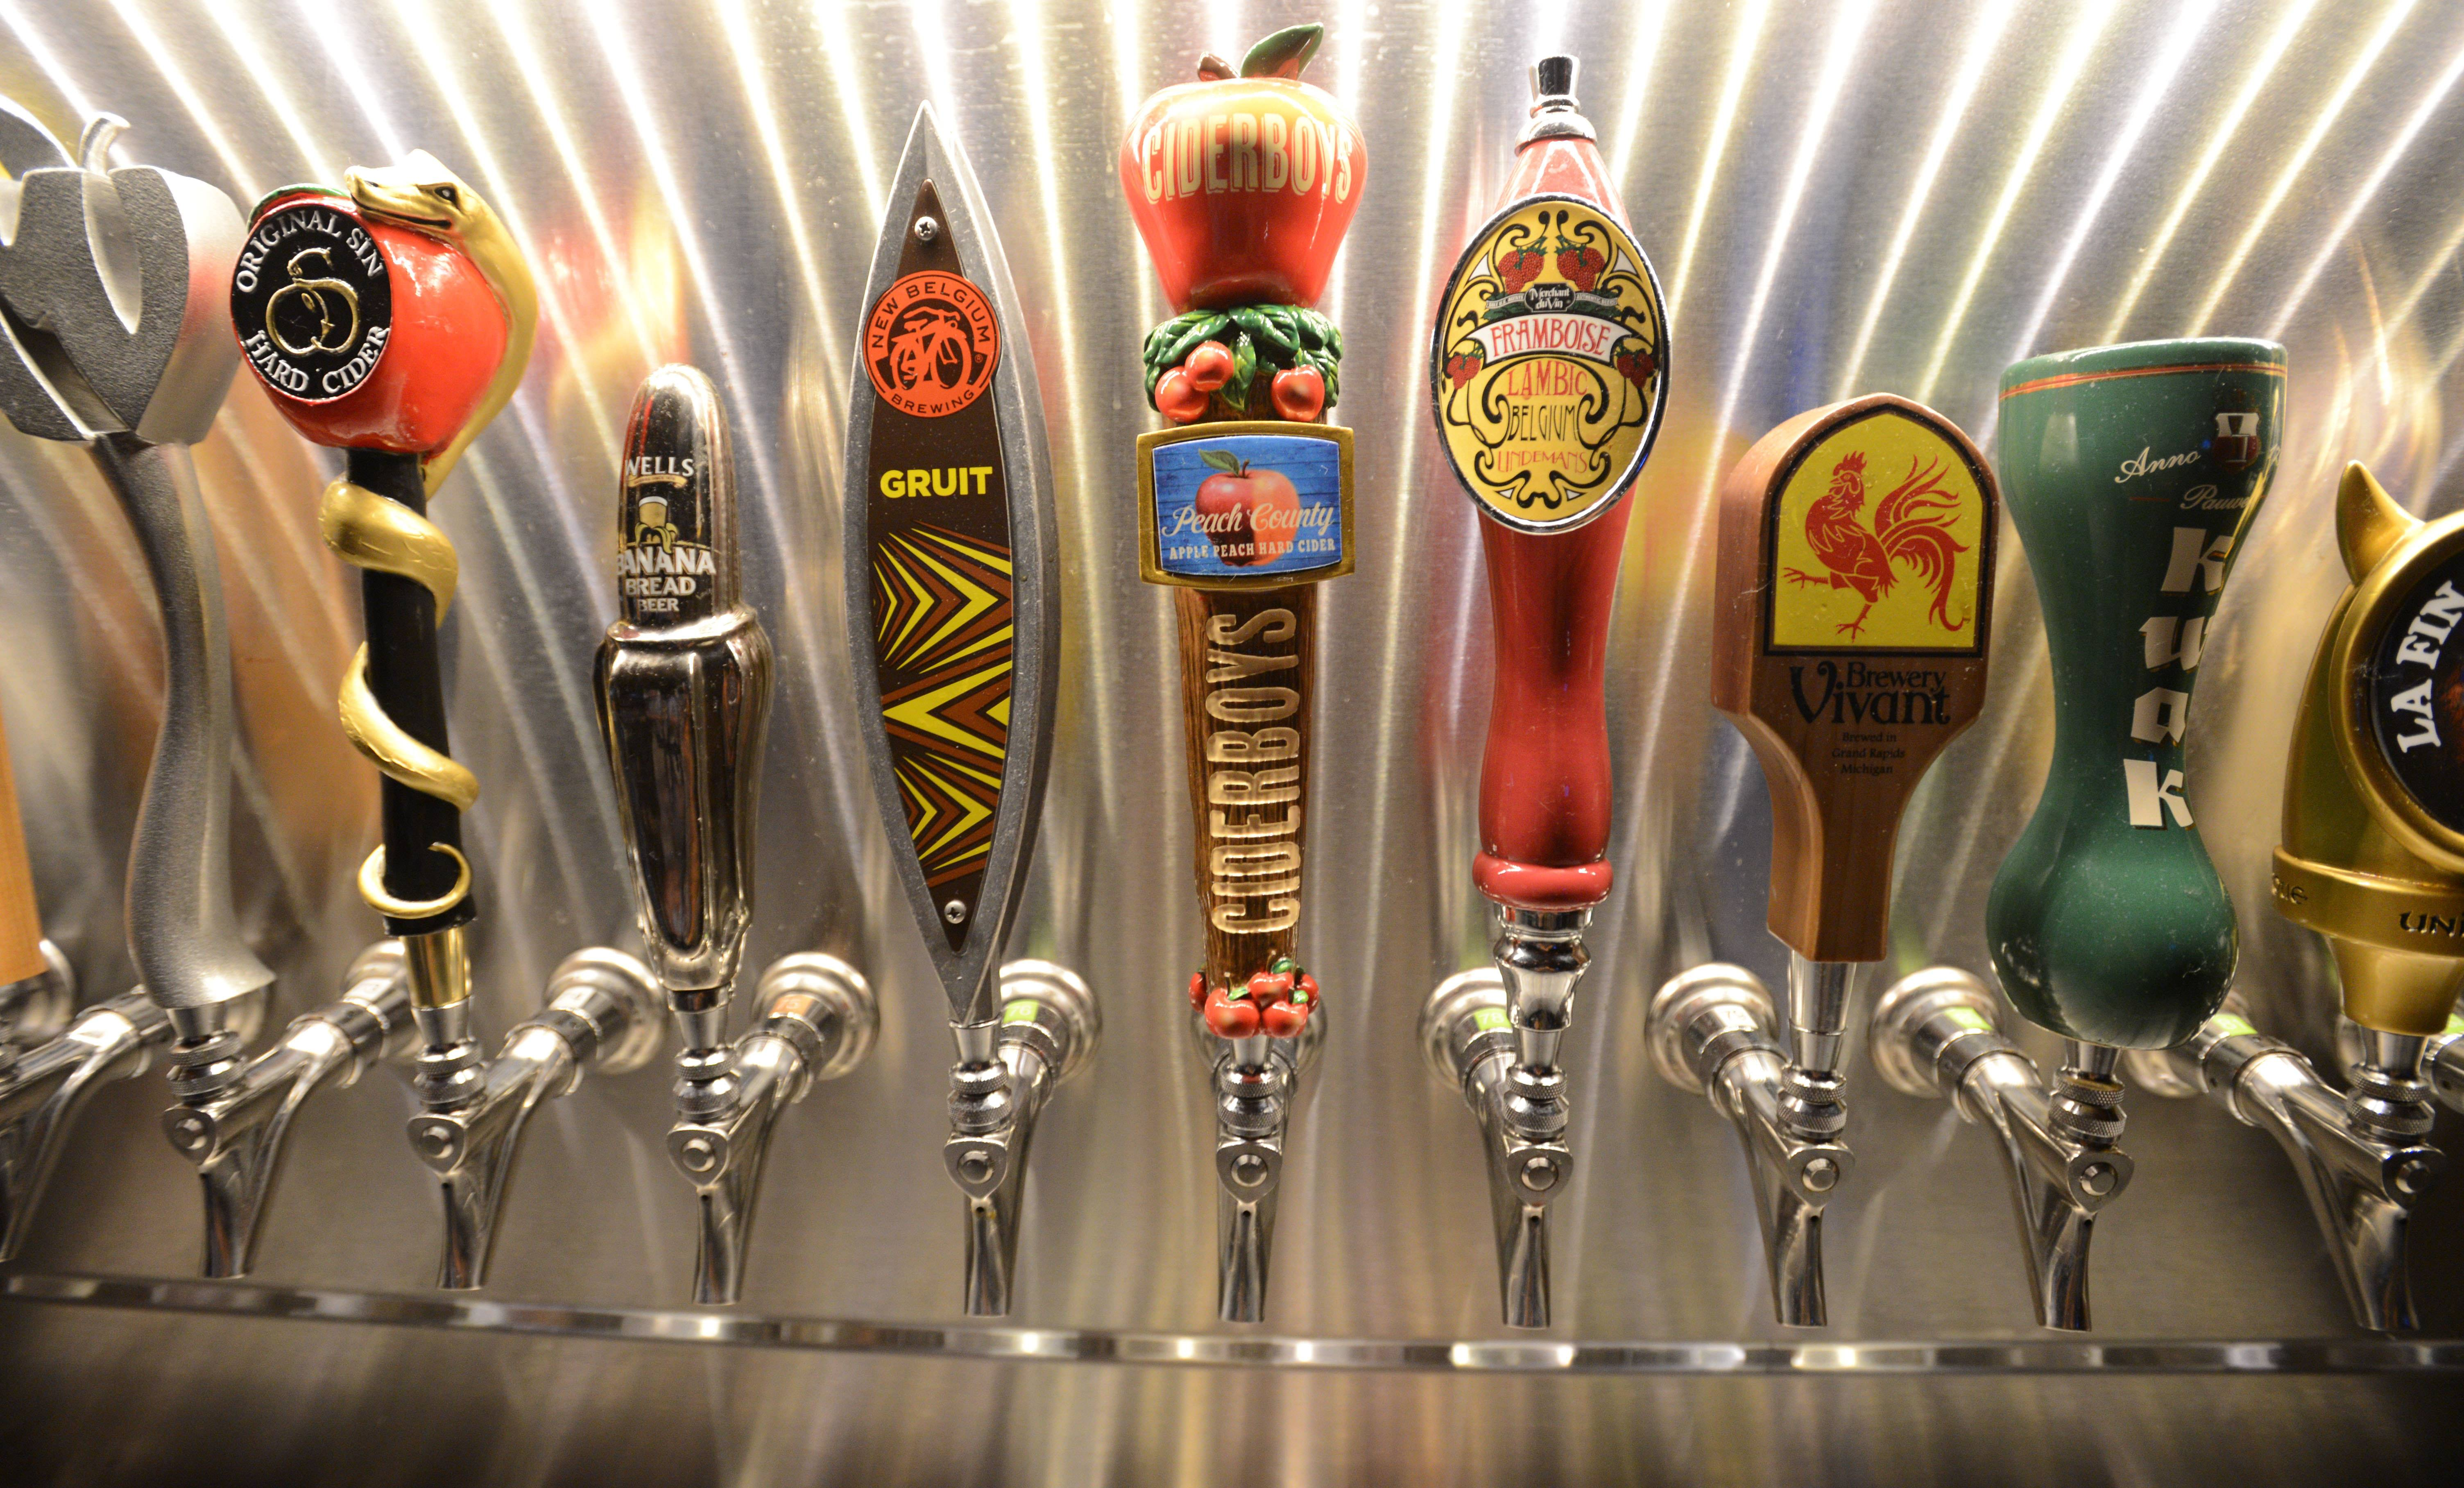 Old Town Pour House in Oak Brook has 90 beers on tap.